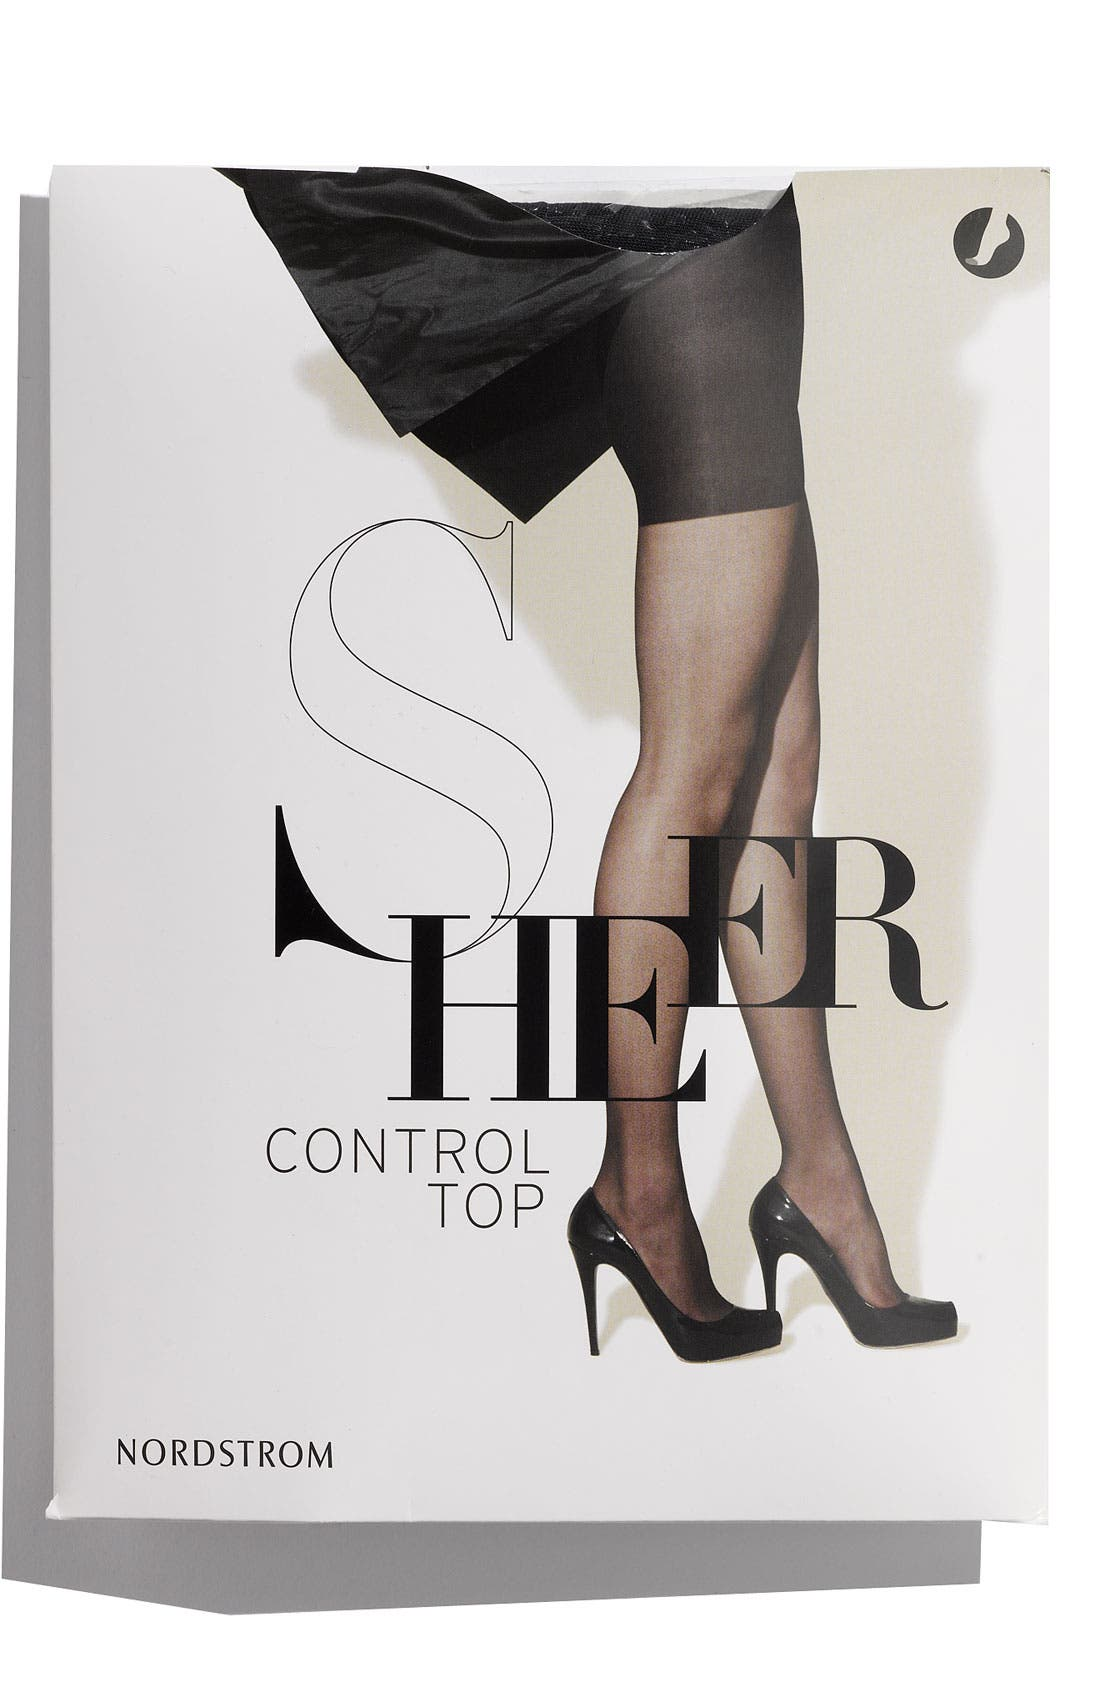 Alternate Image 1 Selected - Nordstrom Sheer Control Top Hosiery